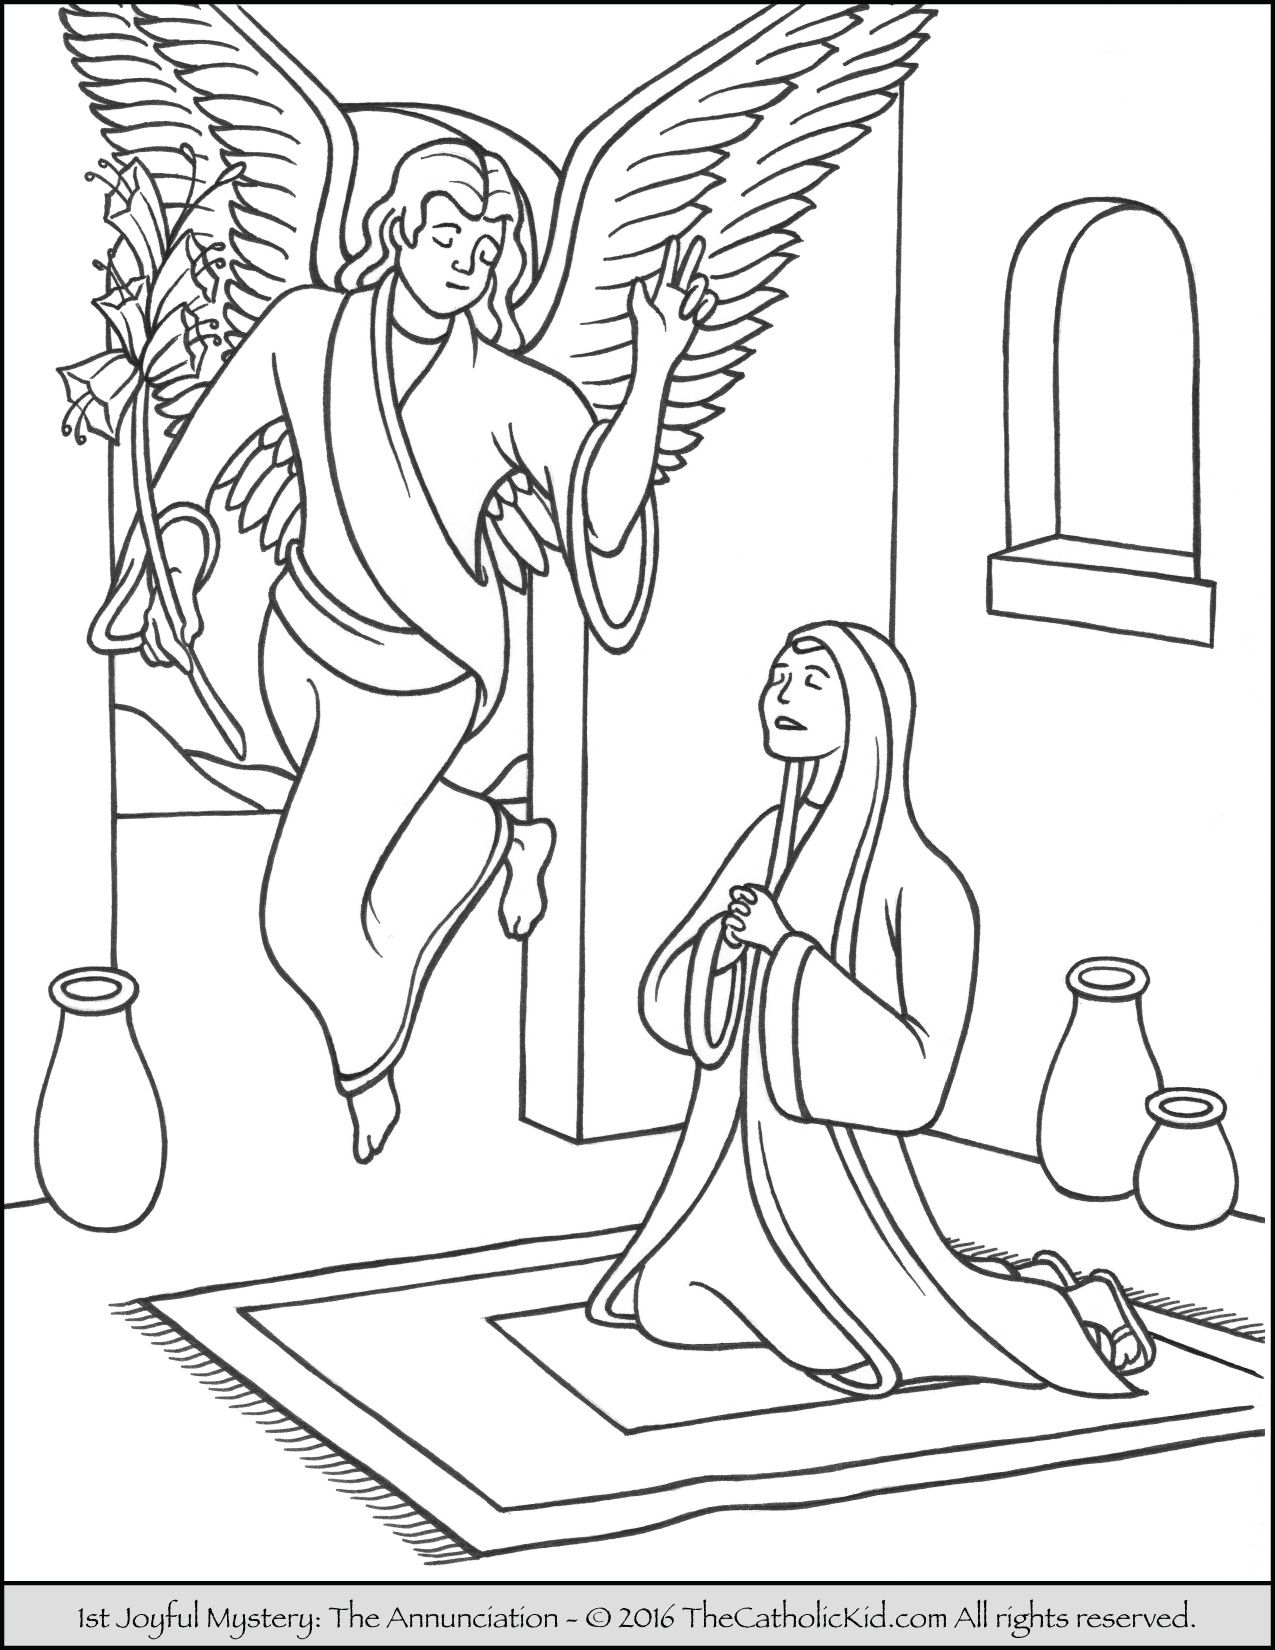 The 1st Joyful Mystery Coloring Page